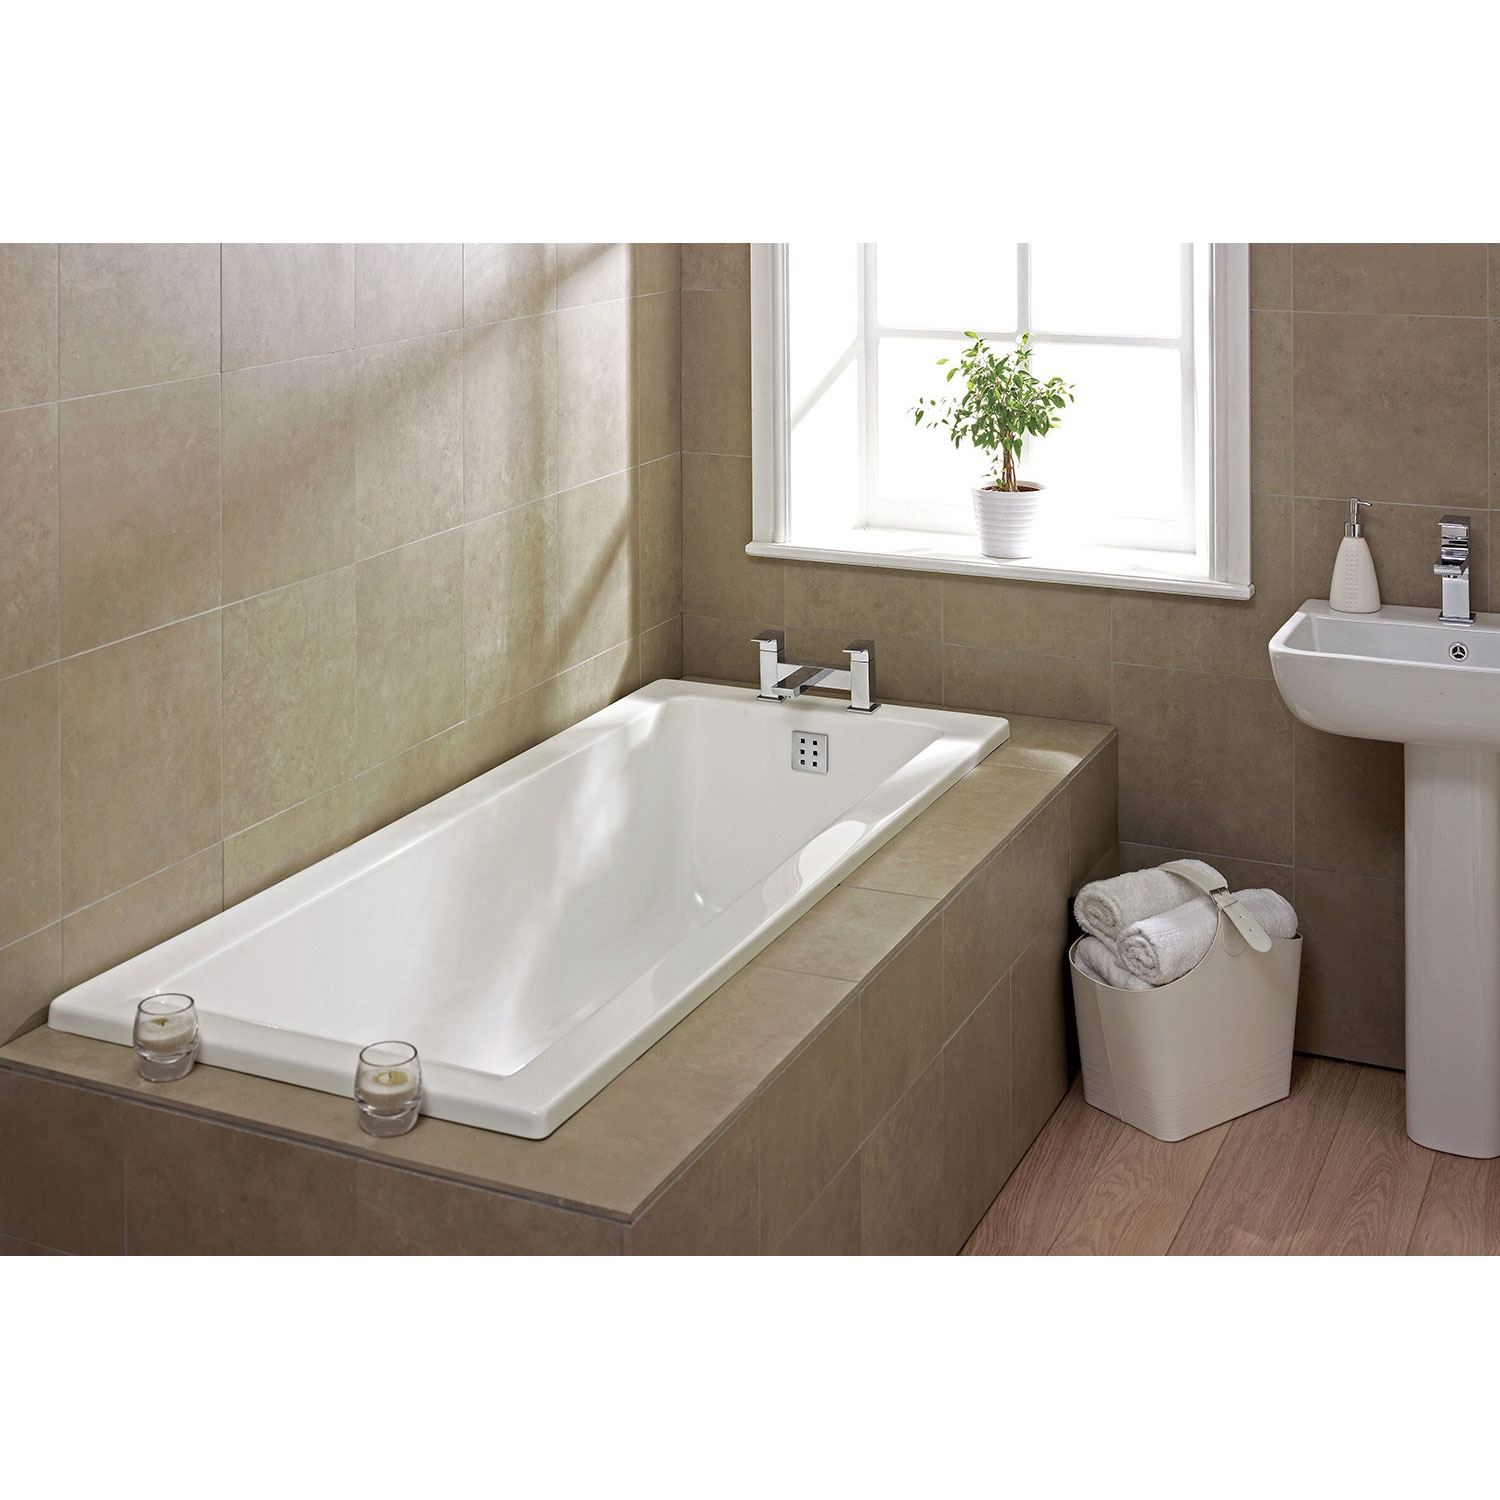 Verona Atlanta Single Ended Rectangular Tungstenite Bath 1700mm x 700mm - 0 Tap Hole